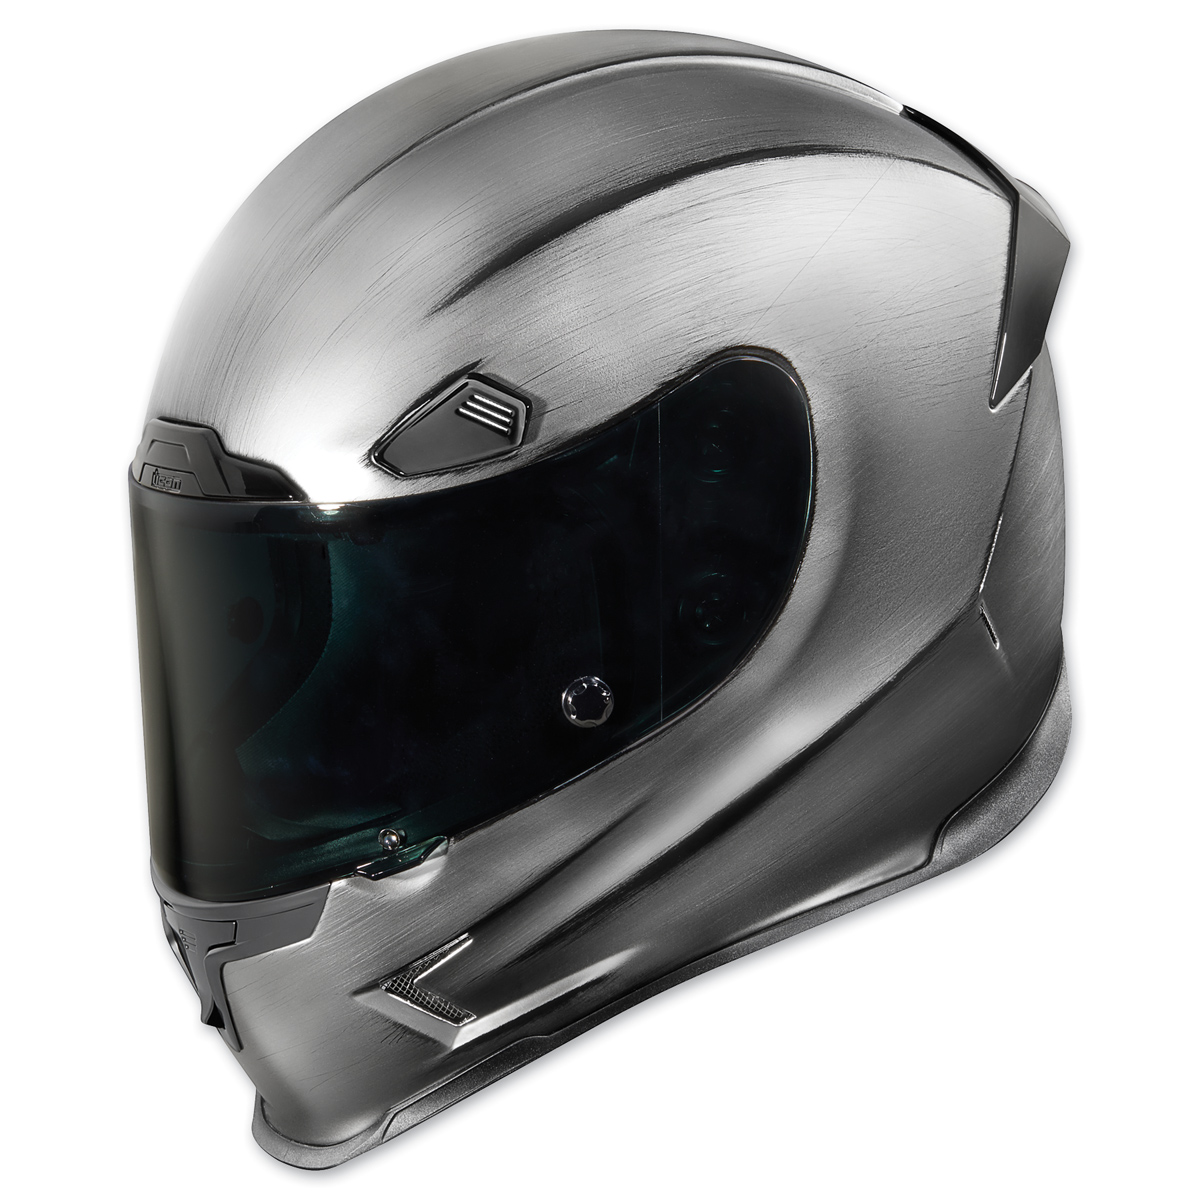 ICON Airframe Pro Quicksilver Full Face Helmet